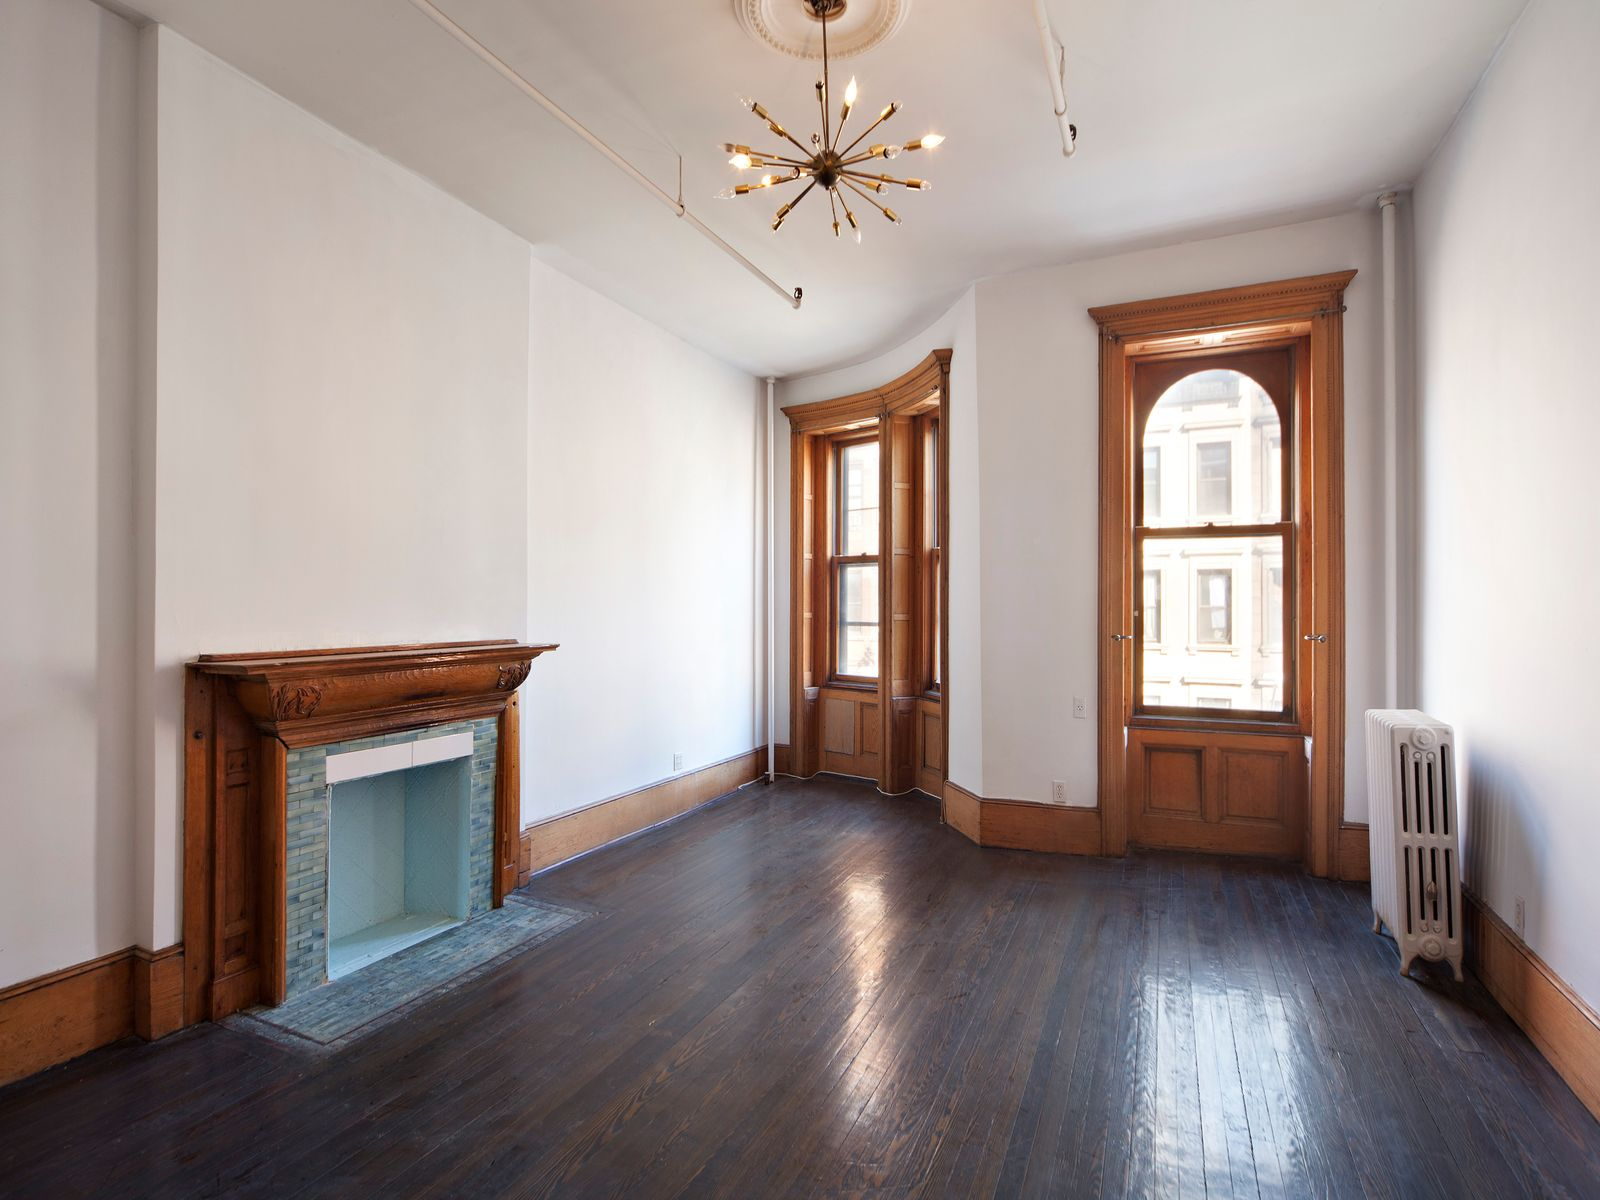 74 W 82nd St, Vacant Townhouse off CPW